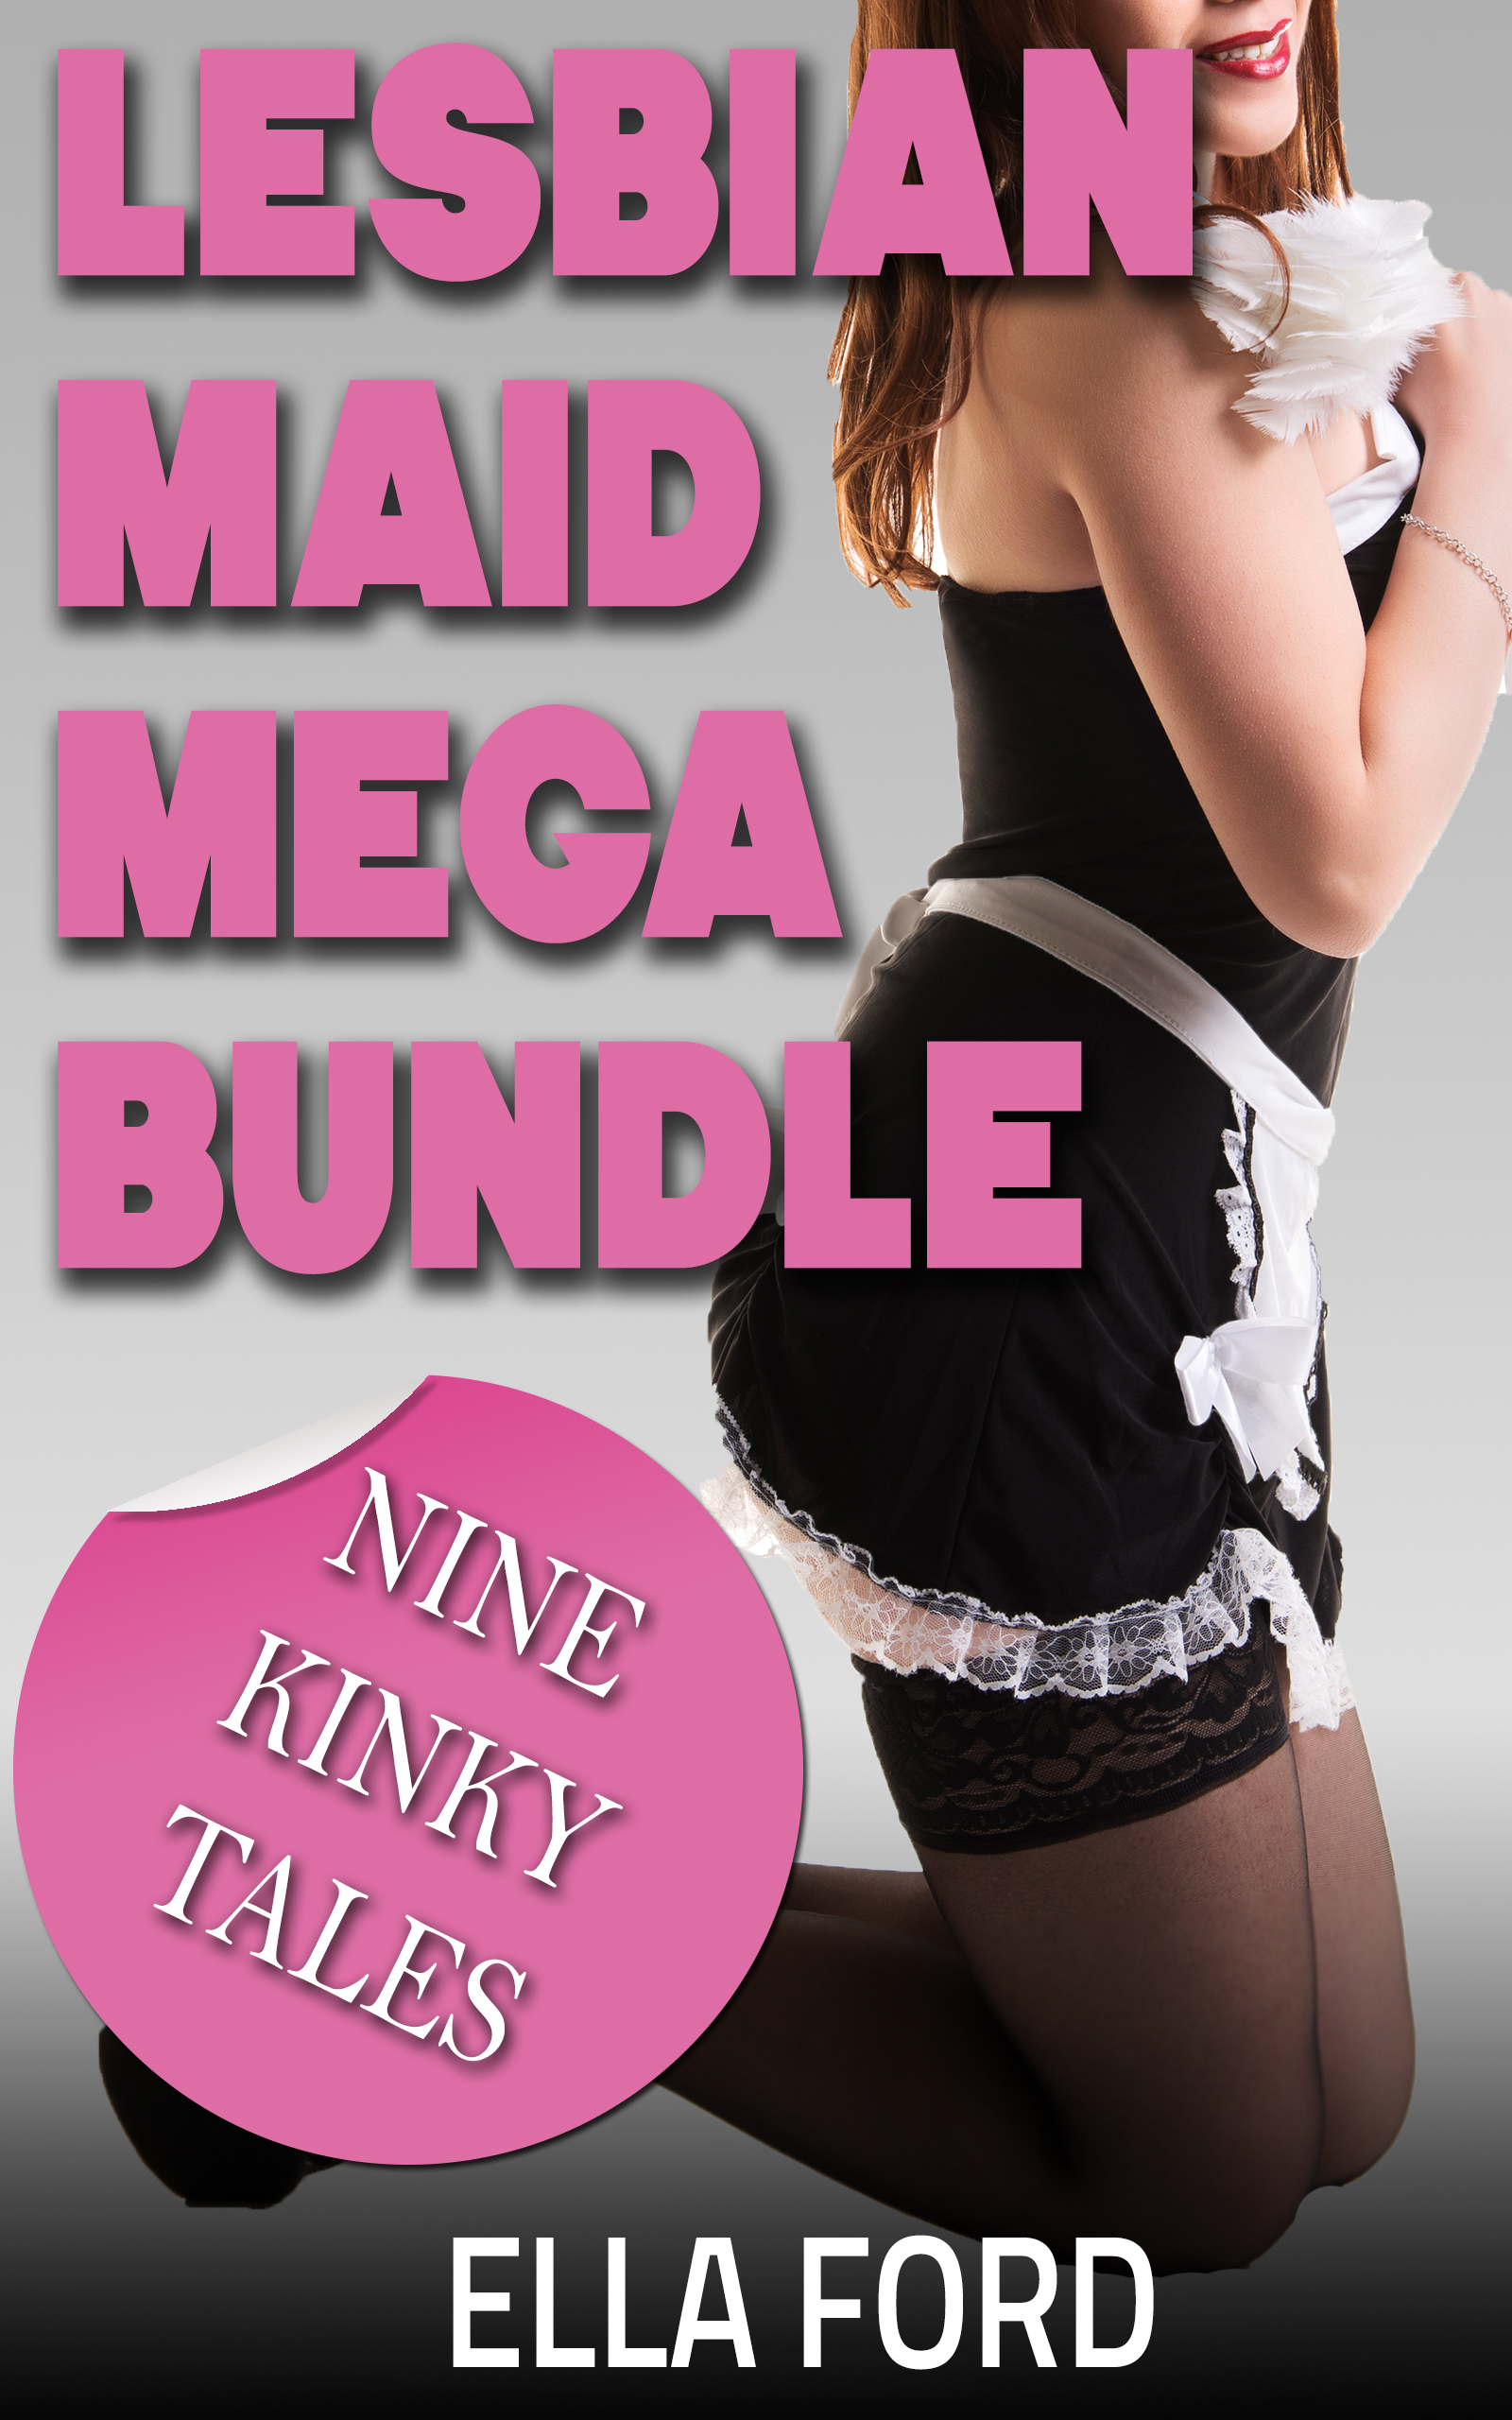 Lesbian Maid Mega Bundle by Ella Ford